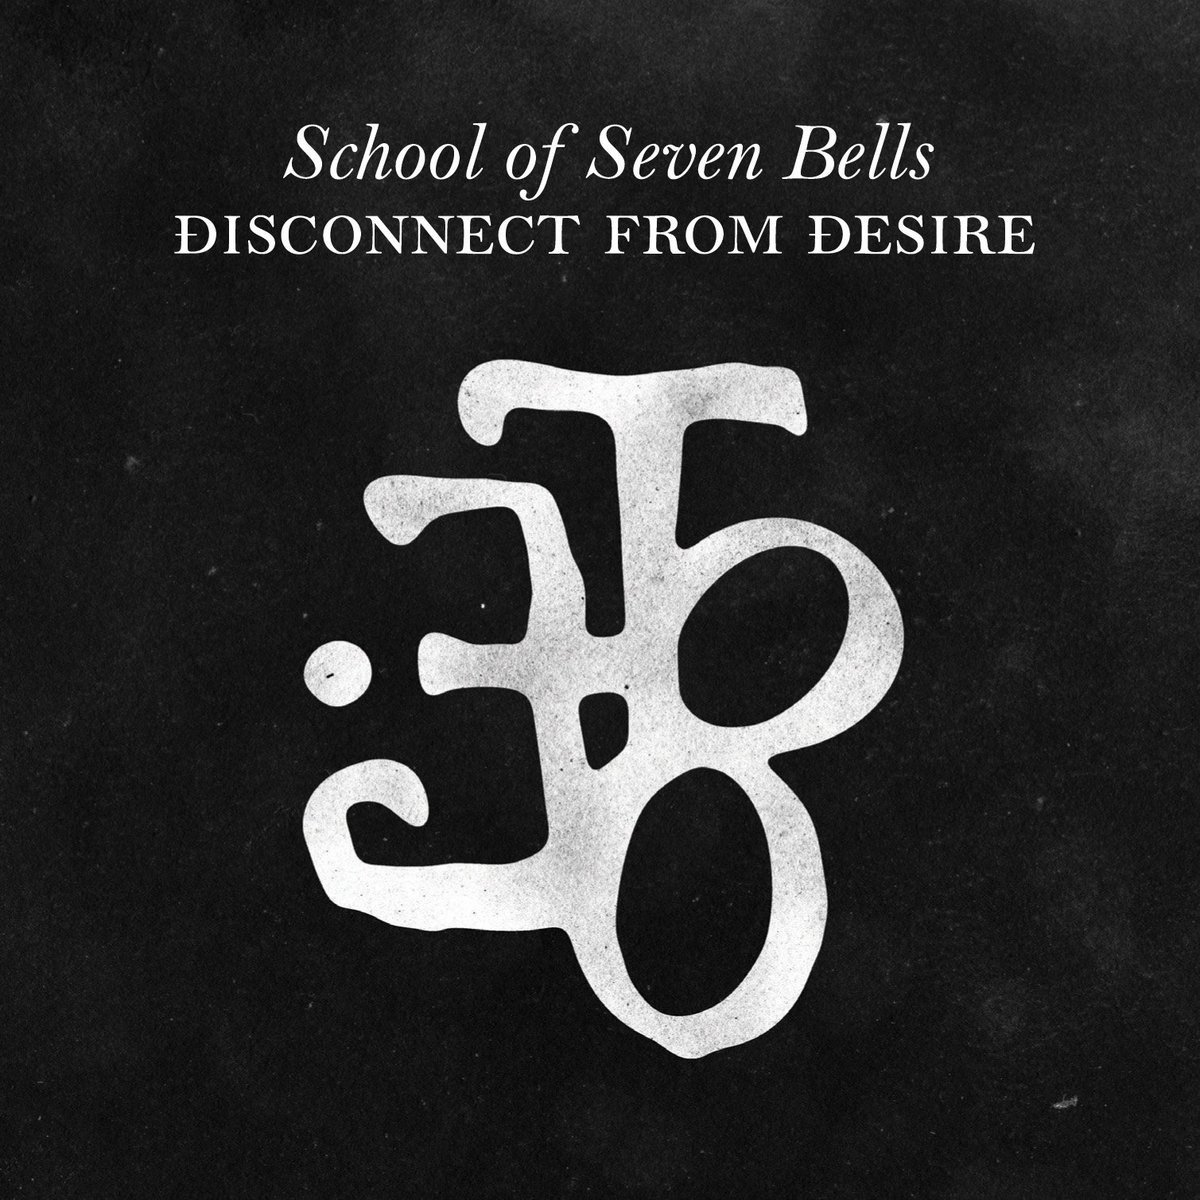 School of Seven Bells, Disconnect from Desire